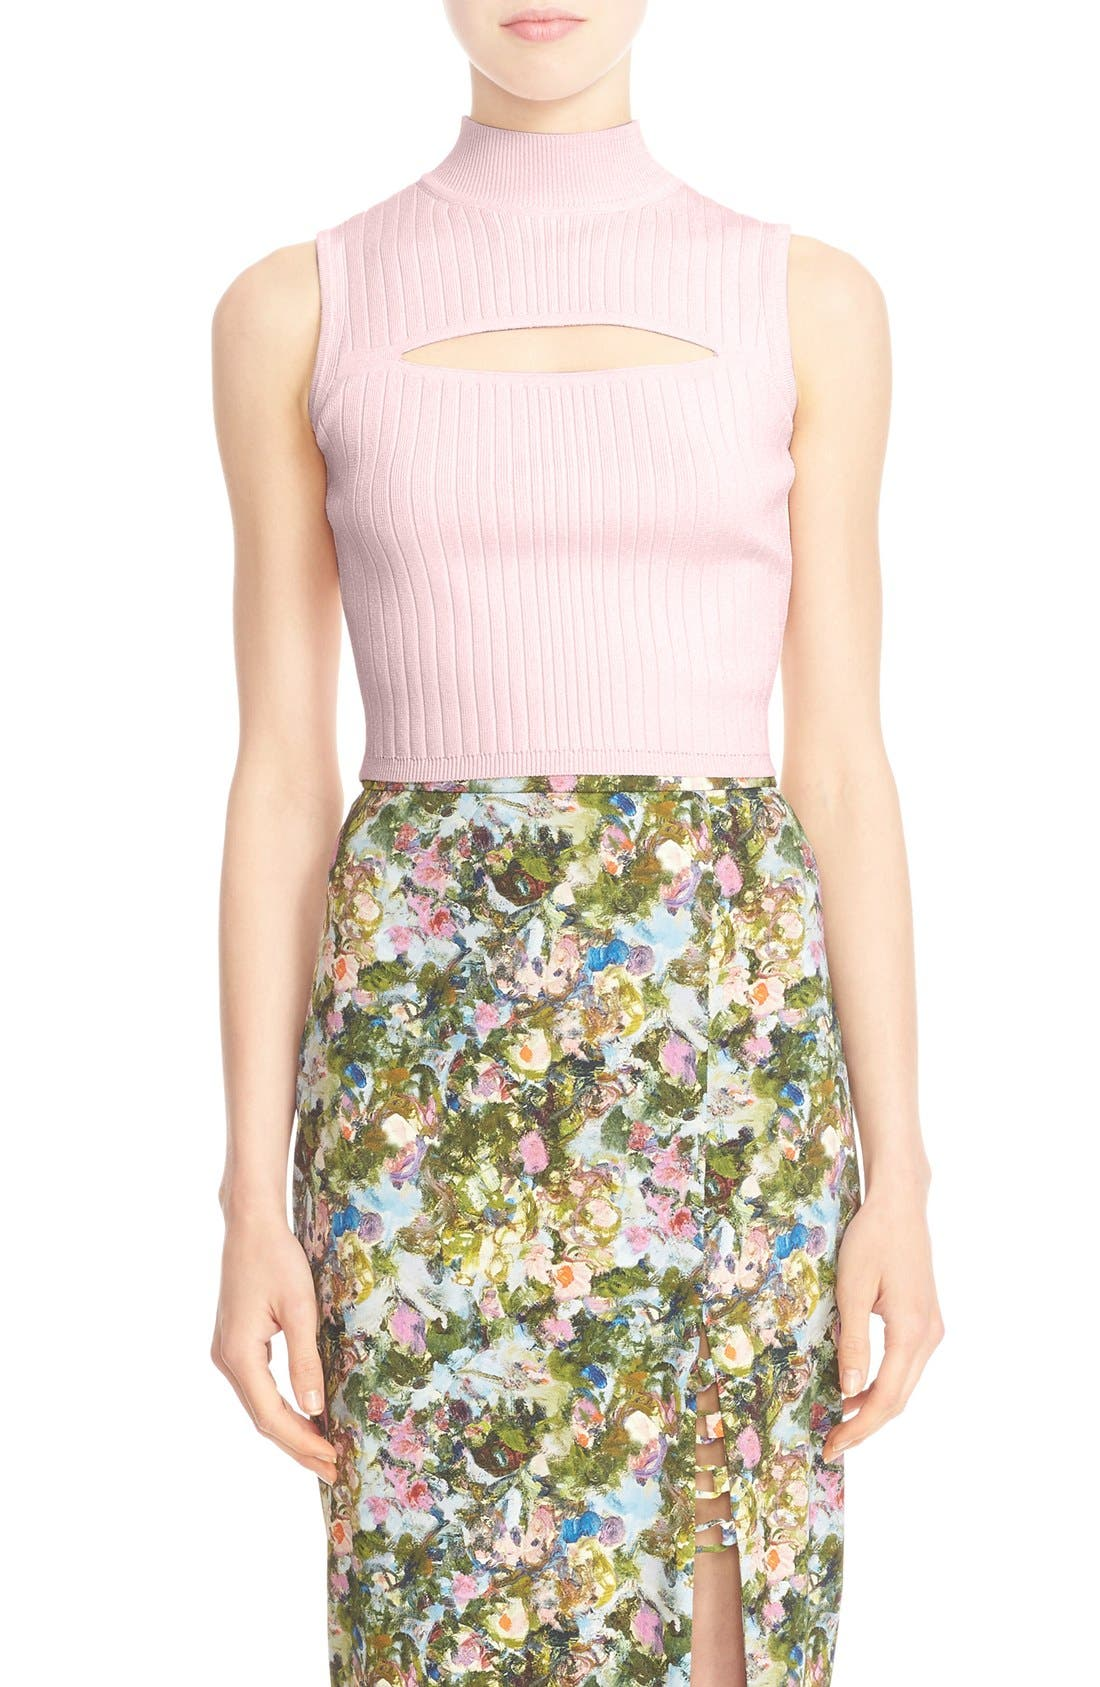 CUSHNIE ET OCHS Cutout Rib Knit Crop Top